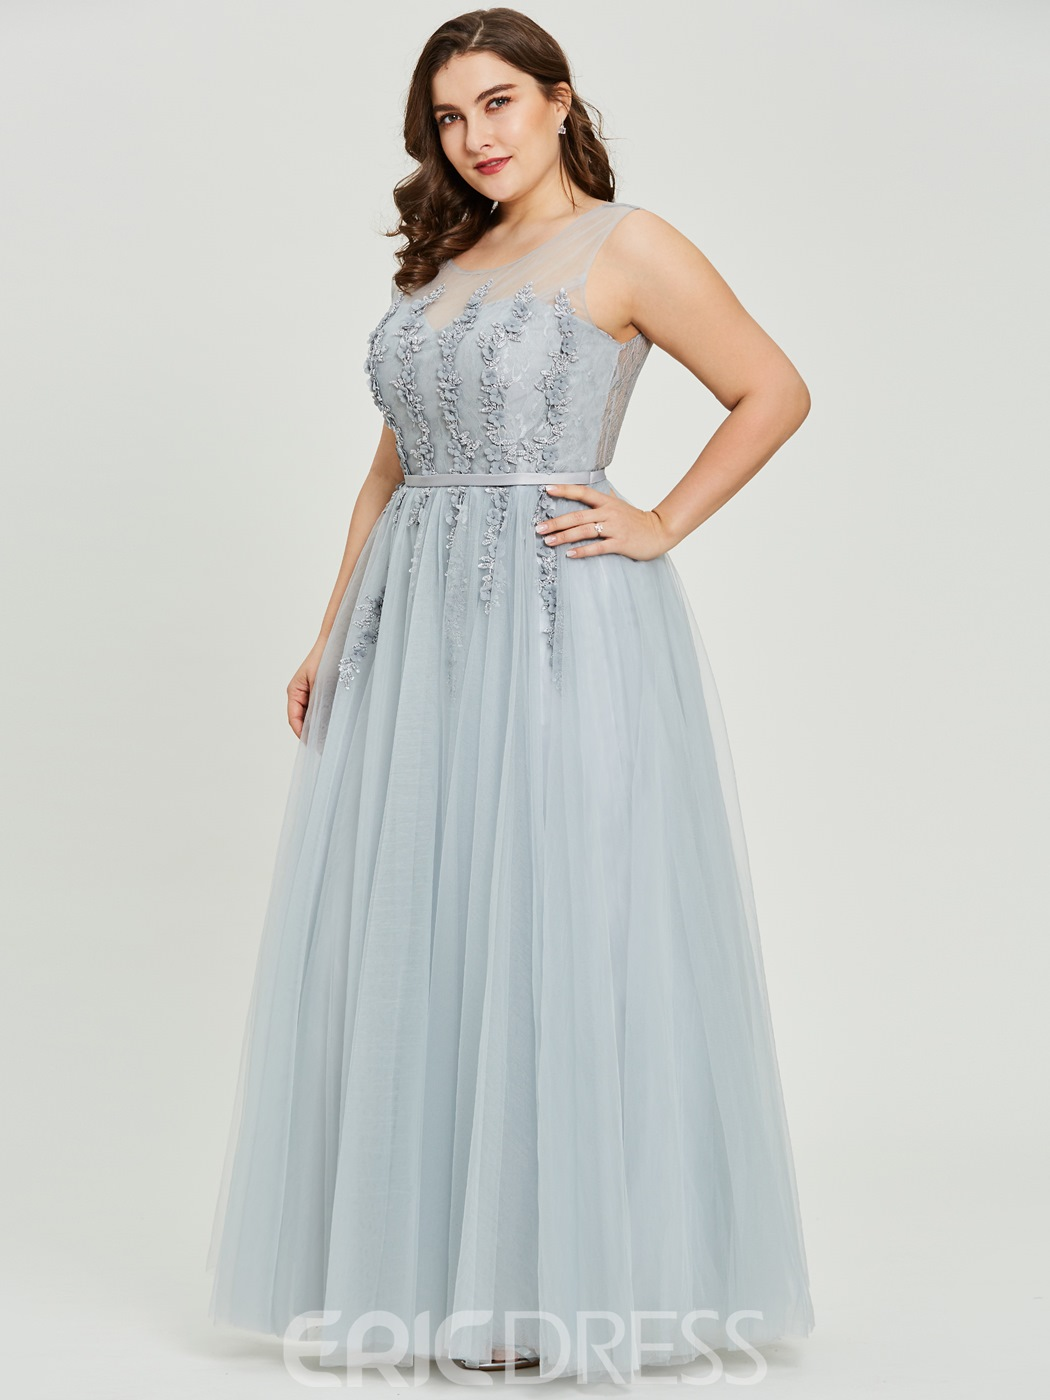 Ericdress Plus Size Scoop Neck Beading A Line Prom Dress 13194089 ...